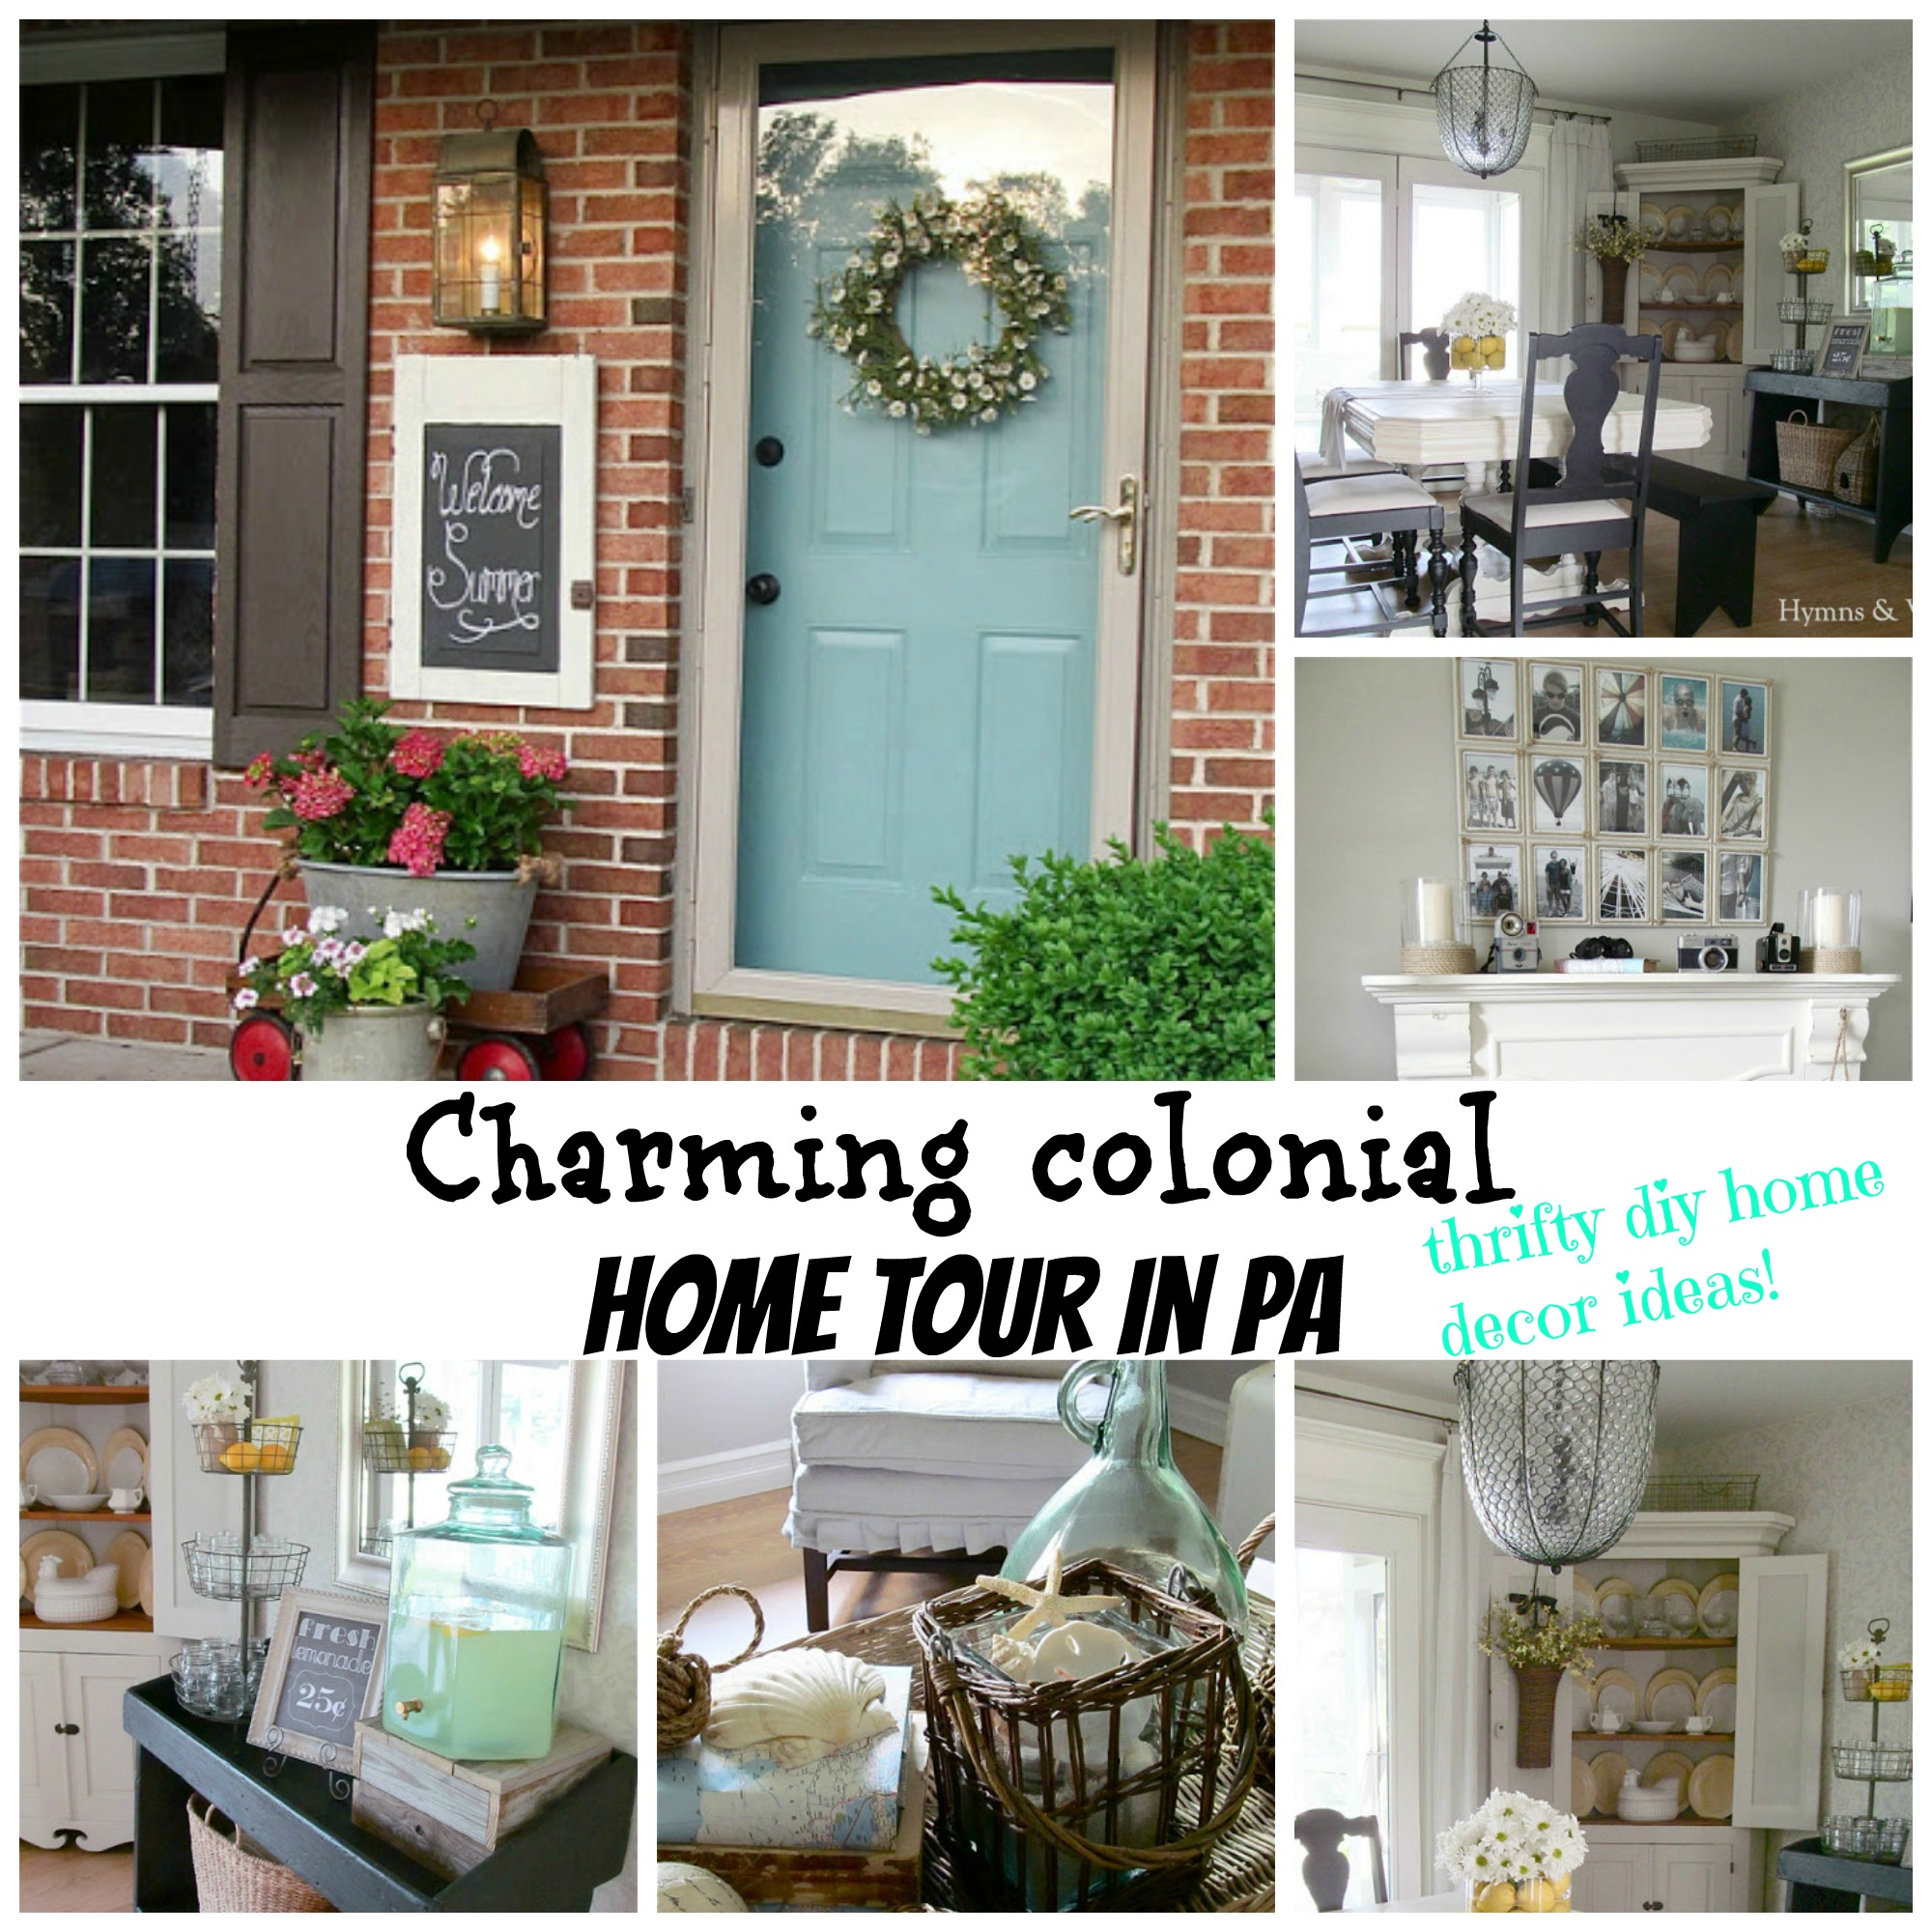 Thrifty Blogs On Home Decor: Colonial Home Tour In PA